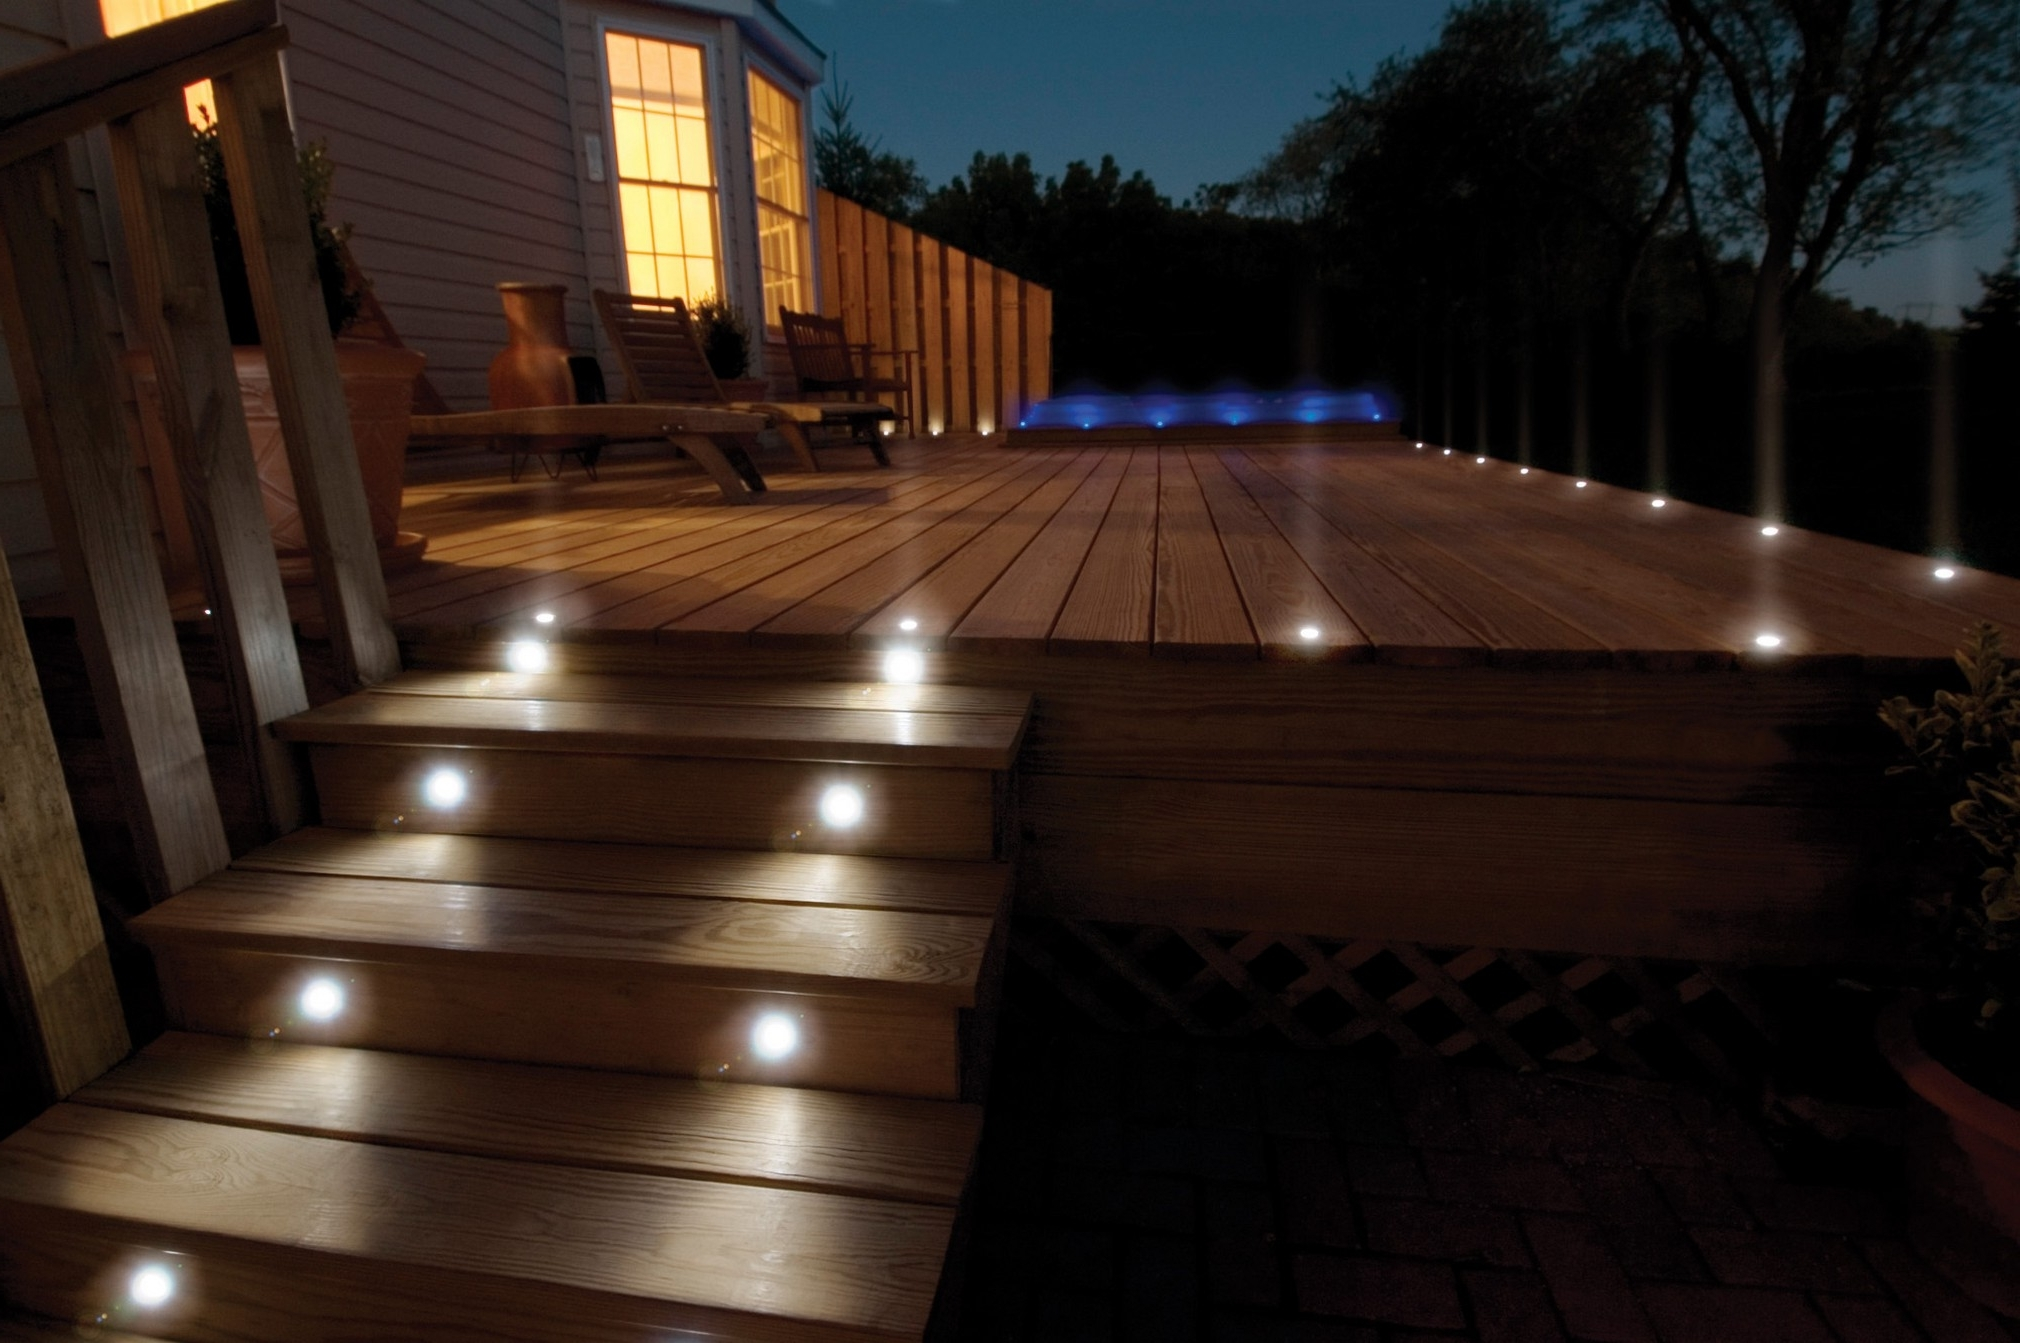 Outdoor Deck Lanterns Pertaining To Most Recent Types Of Deck Lights – Decorifusta (View 7 of 20)